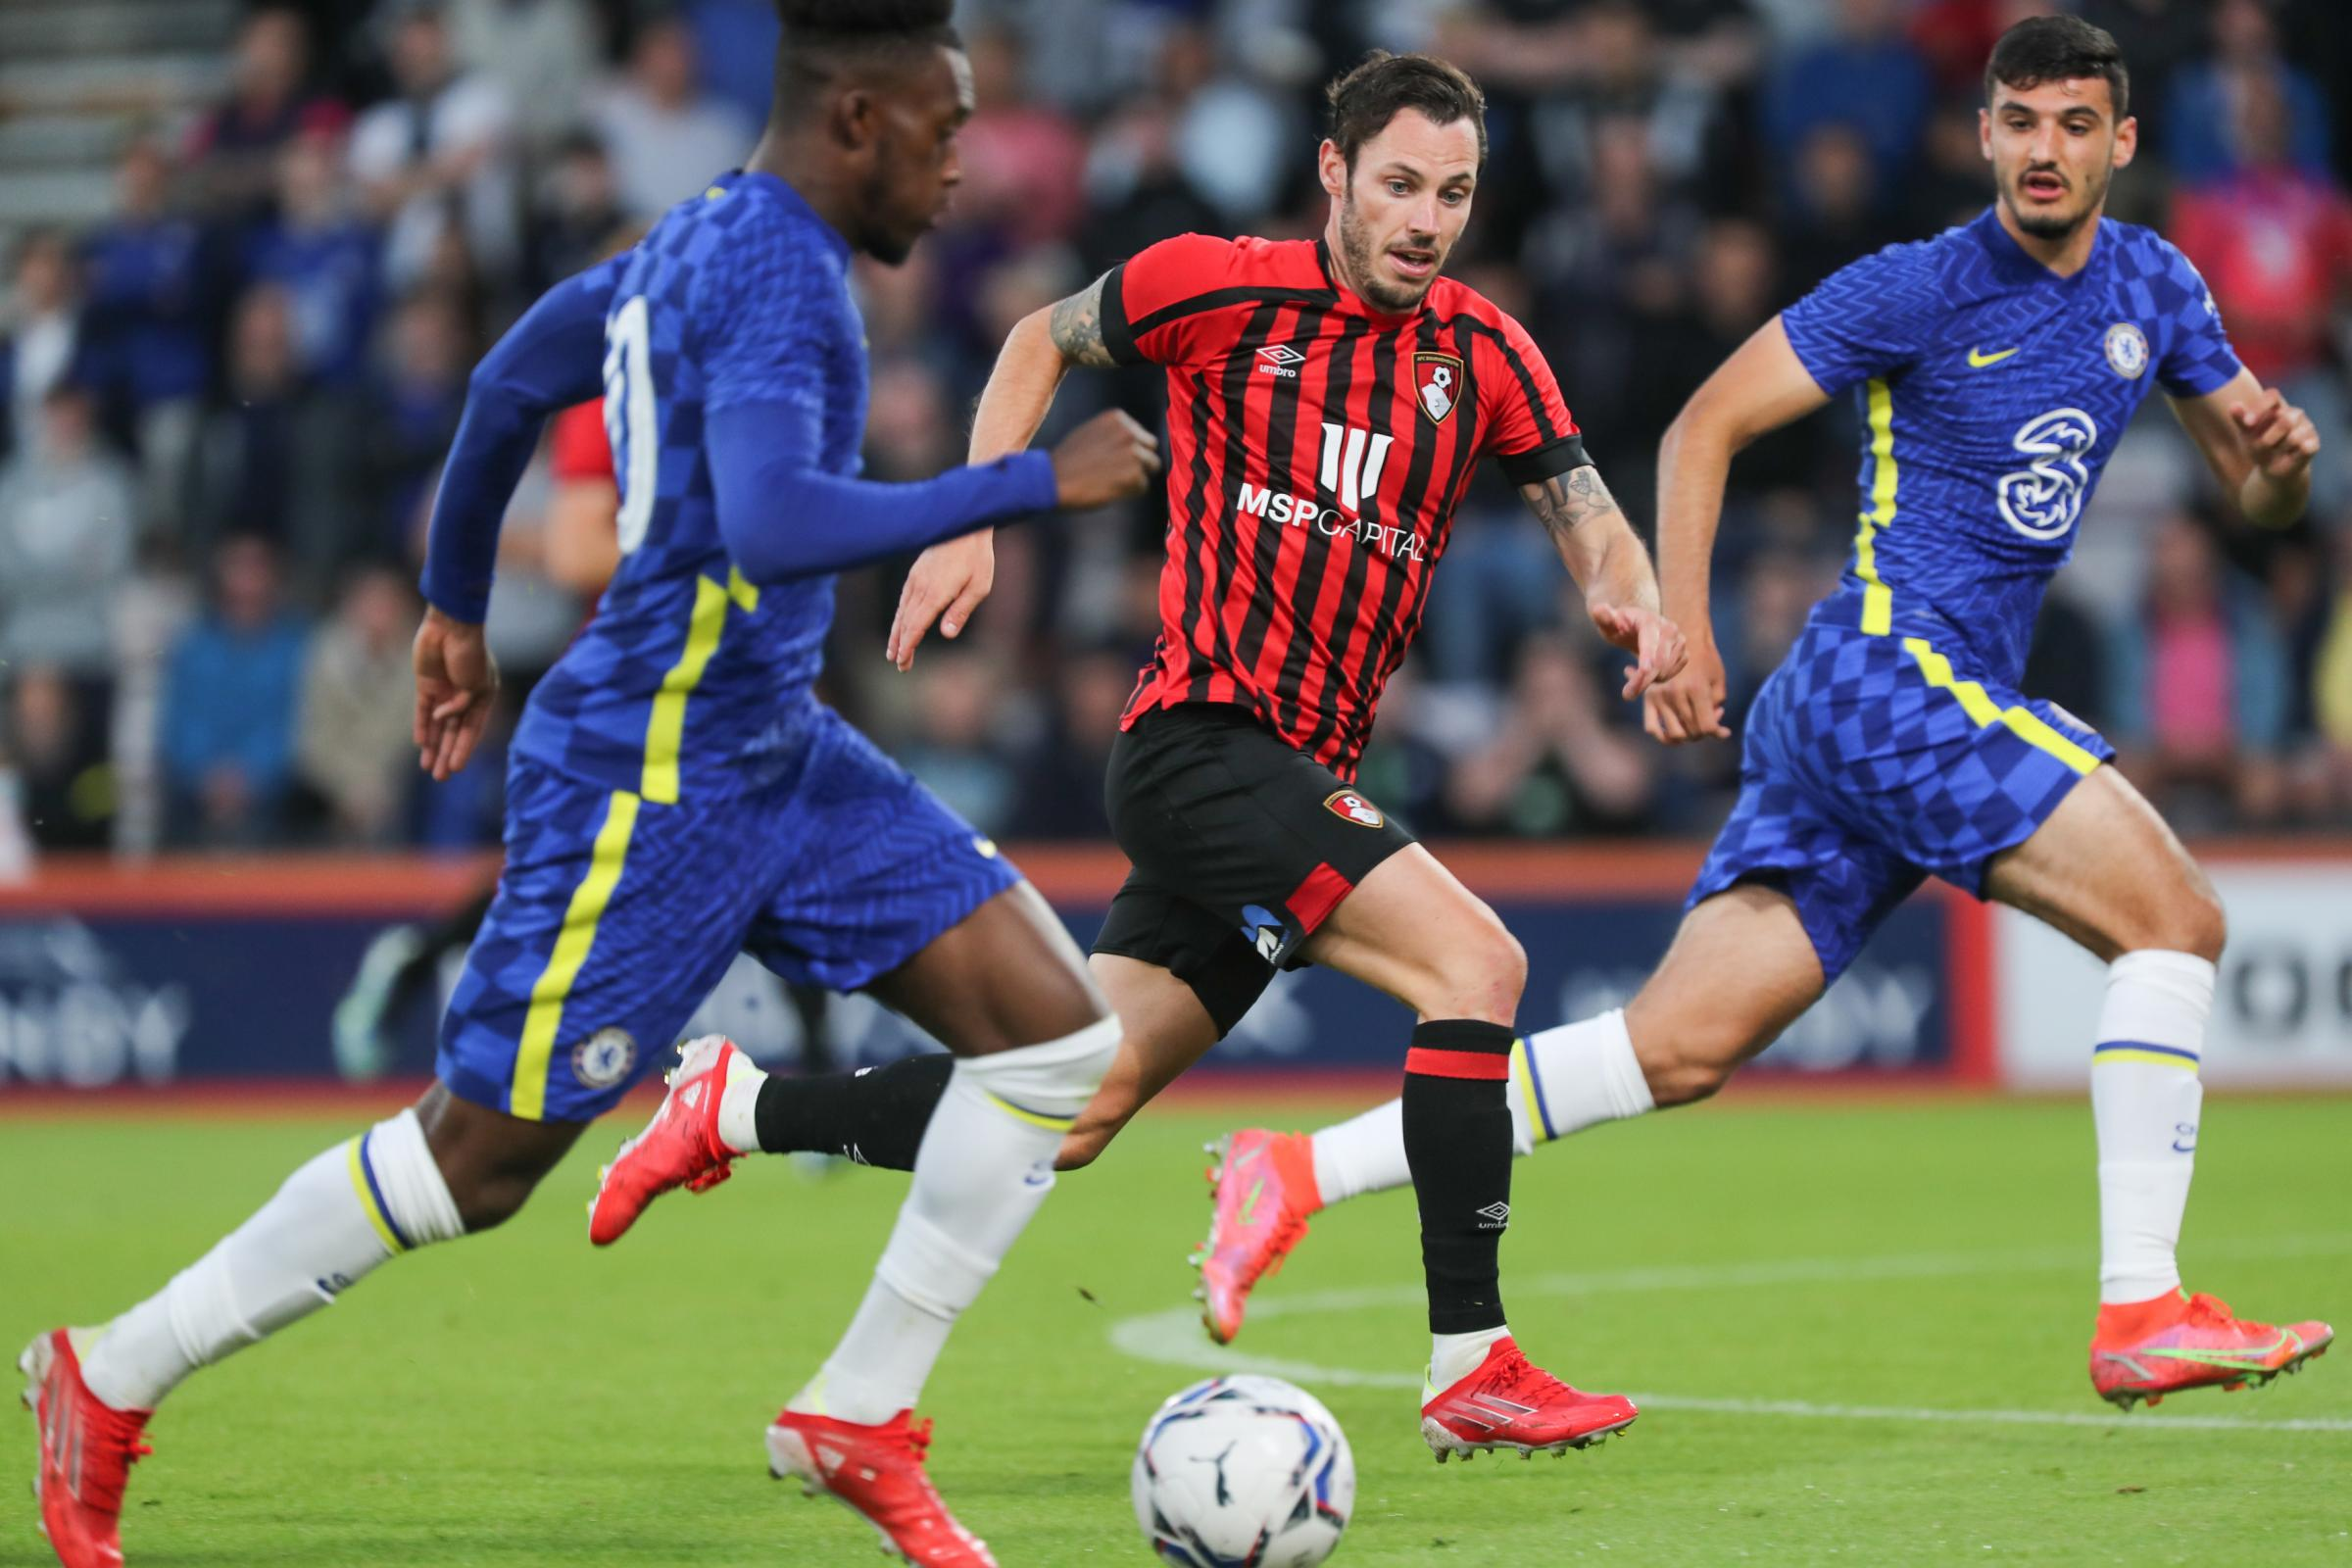 Cherries' Adam Smith supports 'brilliant' new heading rules